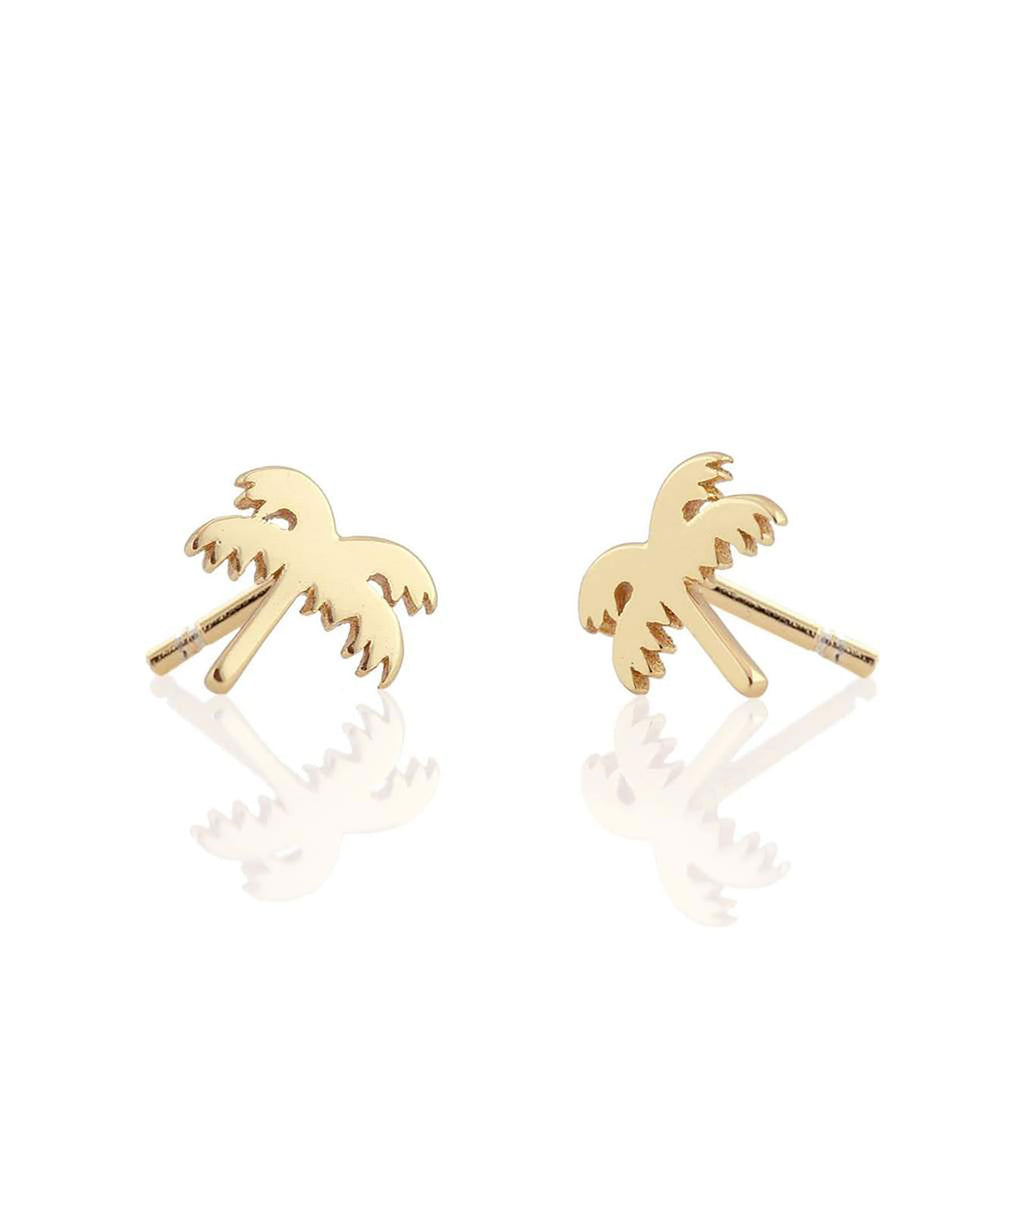 Kris Nations Gold Palm Tree Stud Earrings